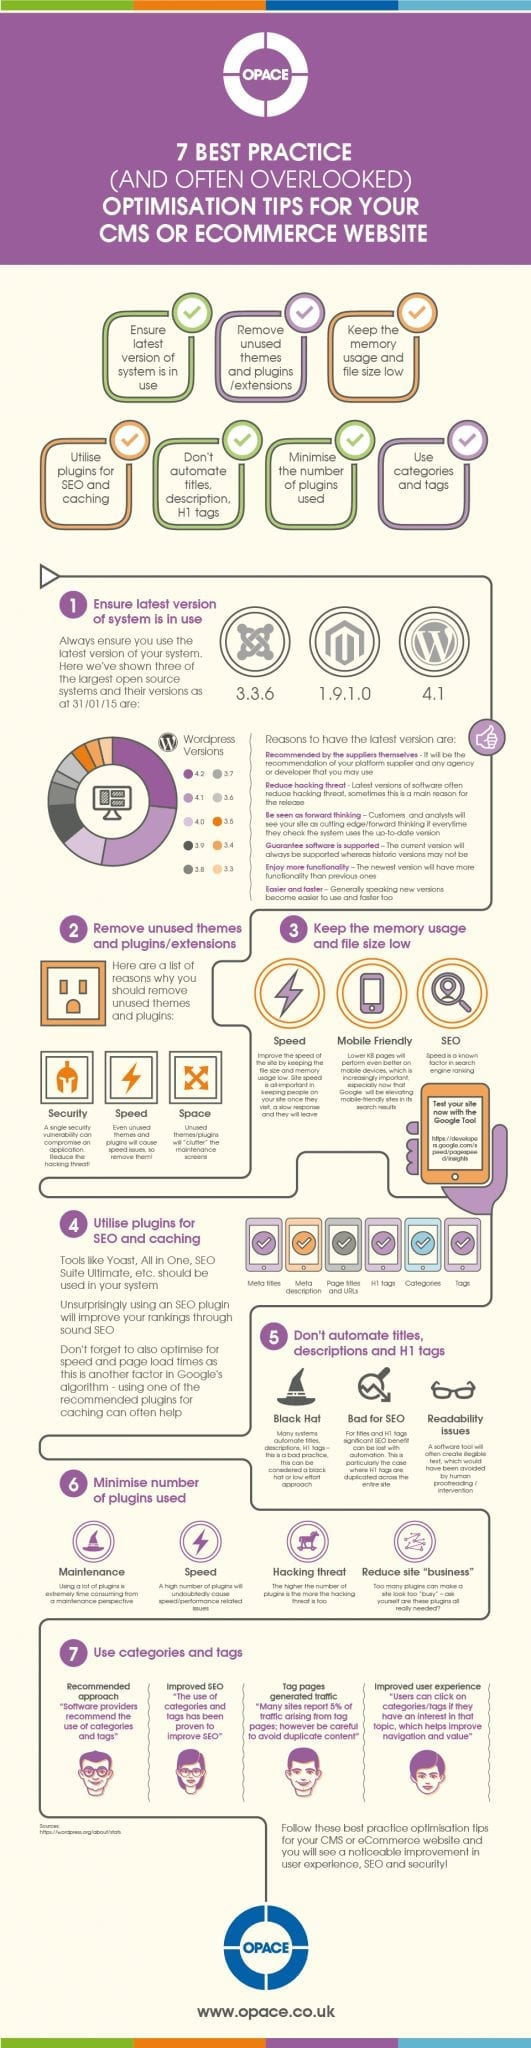 Infographic providing 7 ways to optimise your CMS or e-commerce system